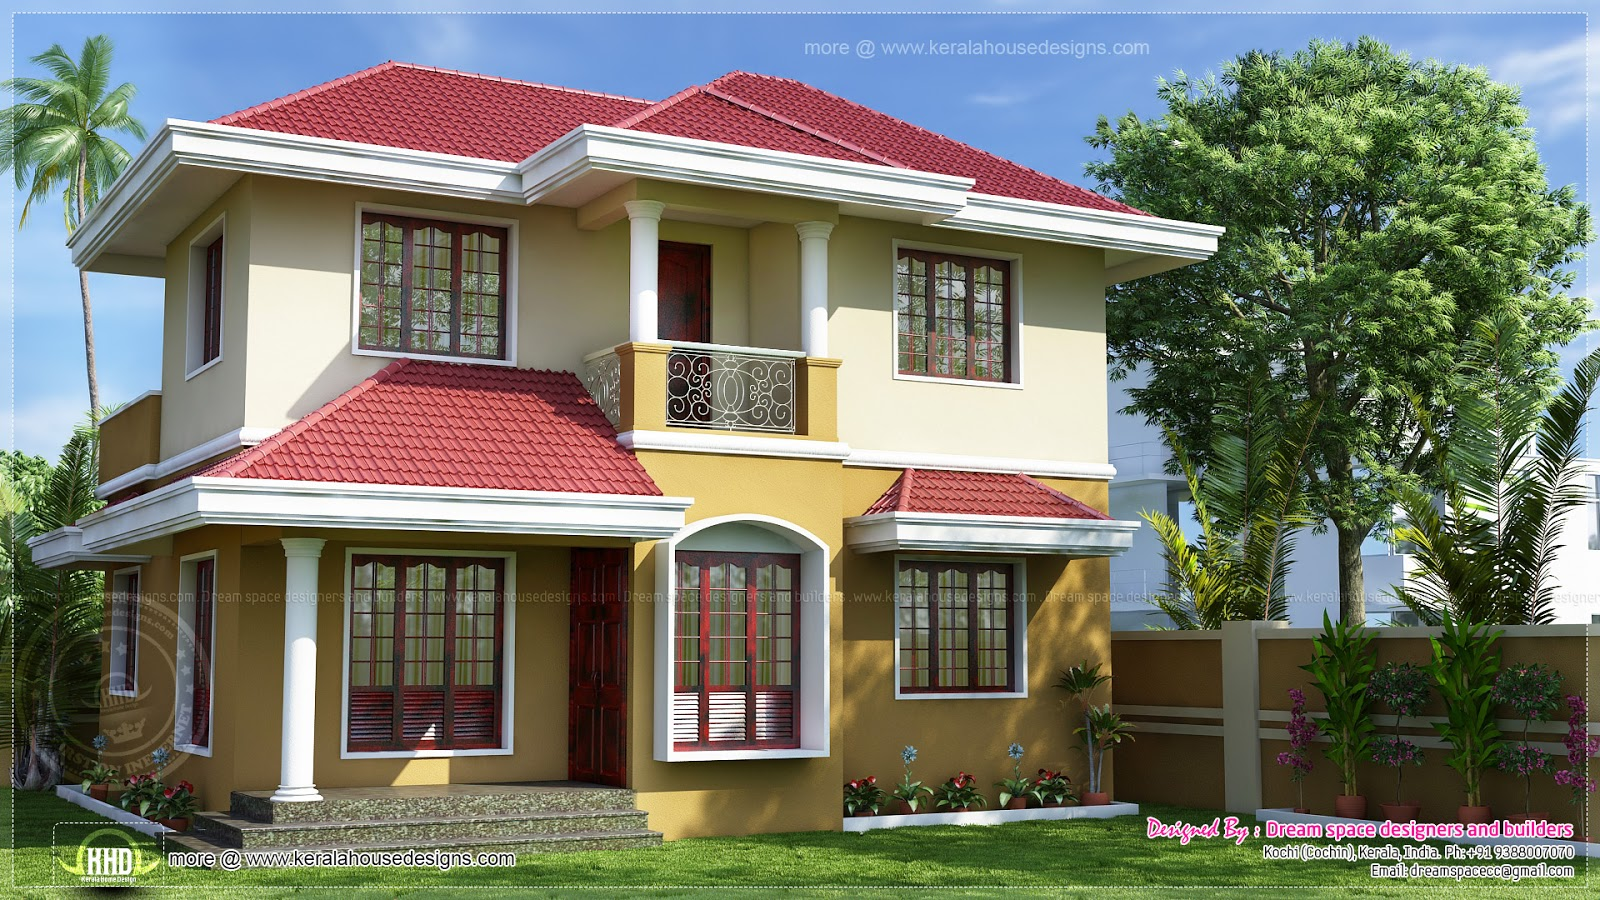 Villa with 3 bed appropriate in a 3 cents of land kerala for Villa plans in kerala